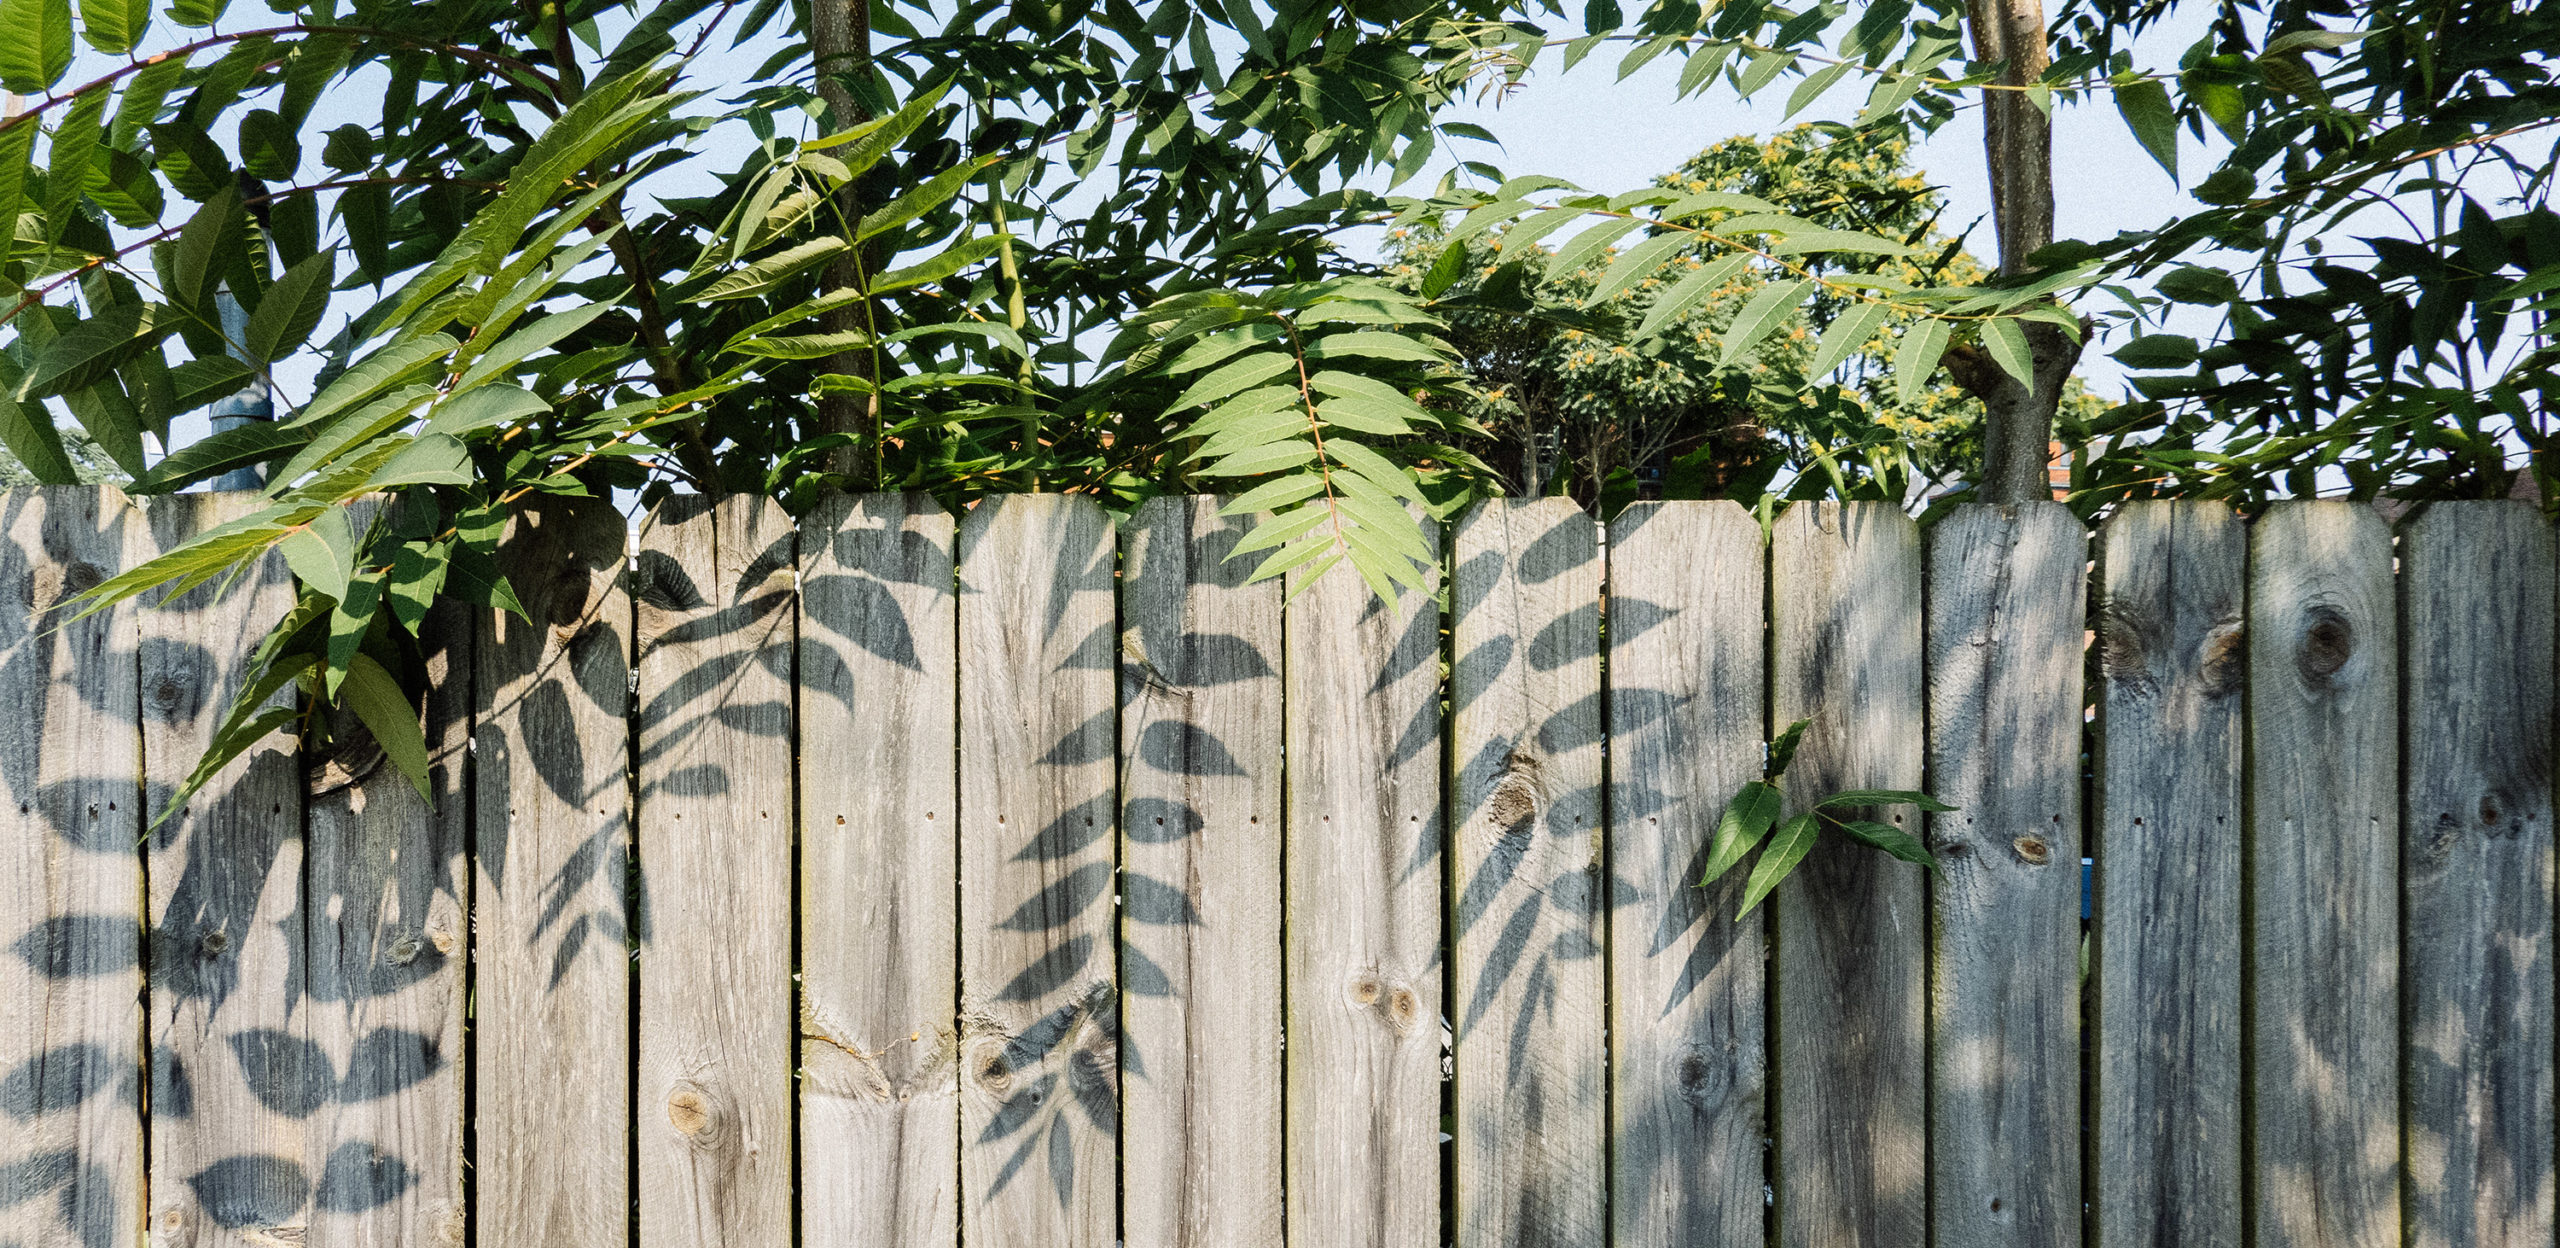 Leaves cast shadows on a wooden fence